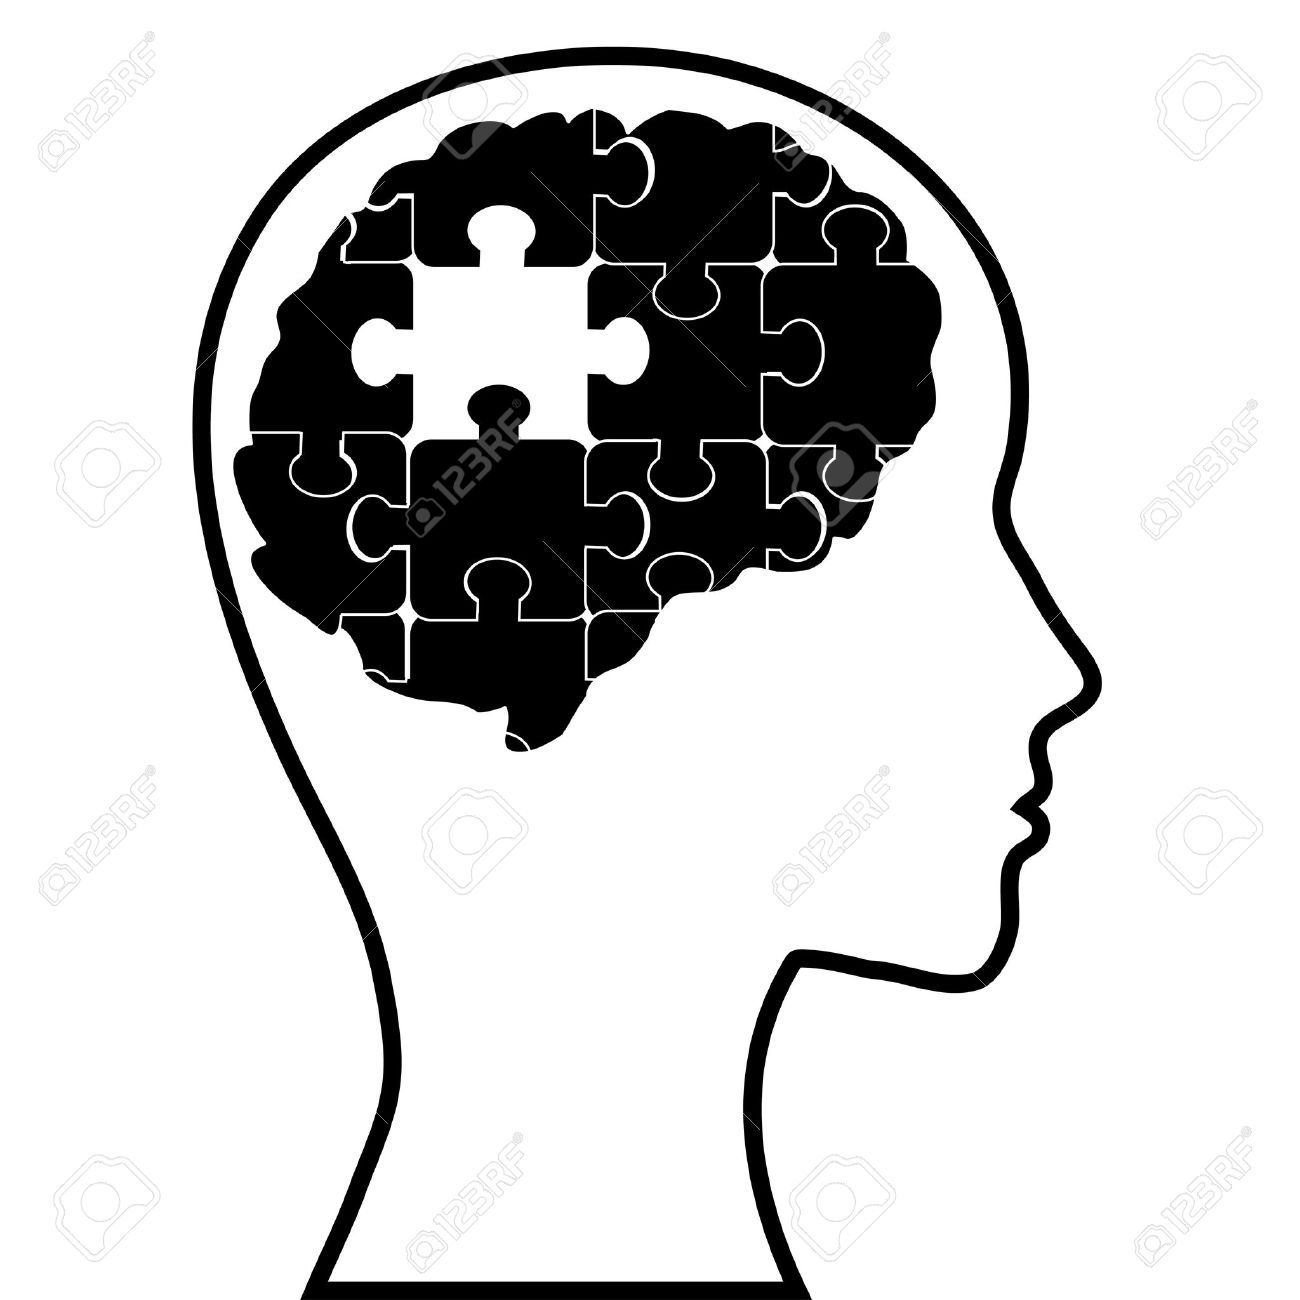 689 Psychology free clipart.